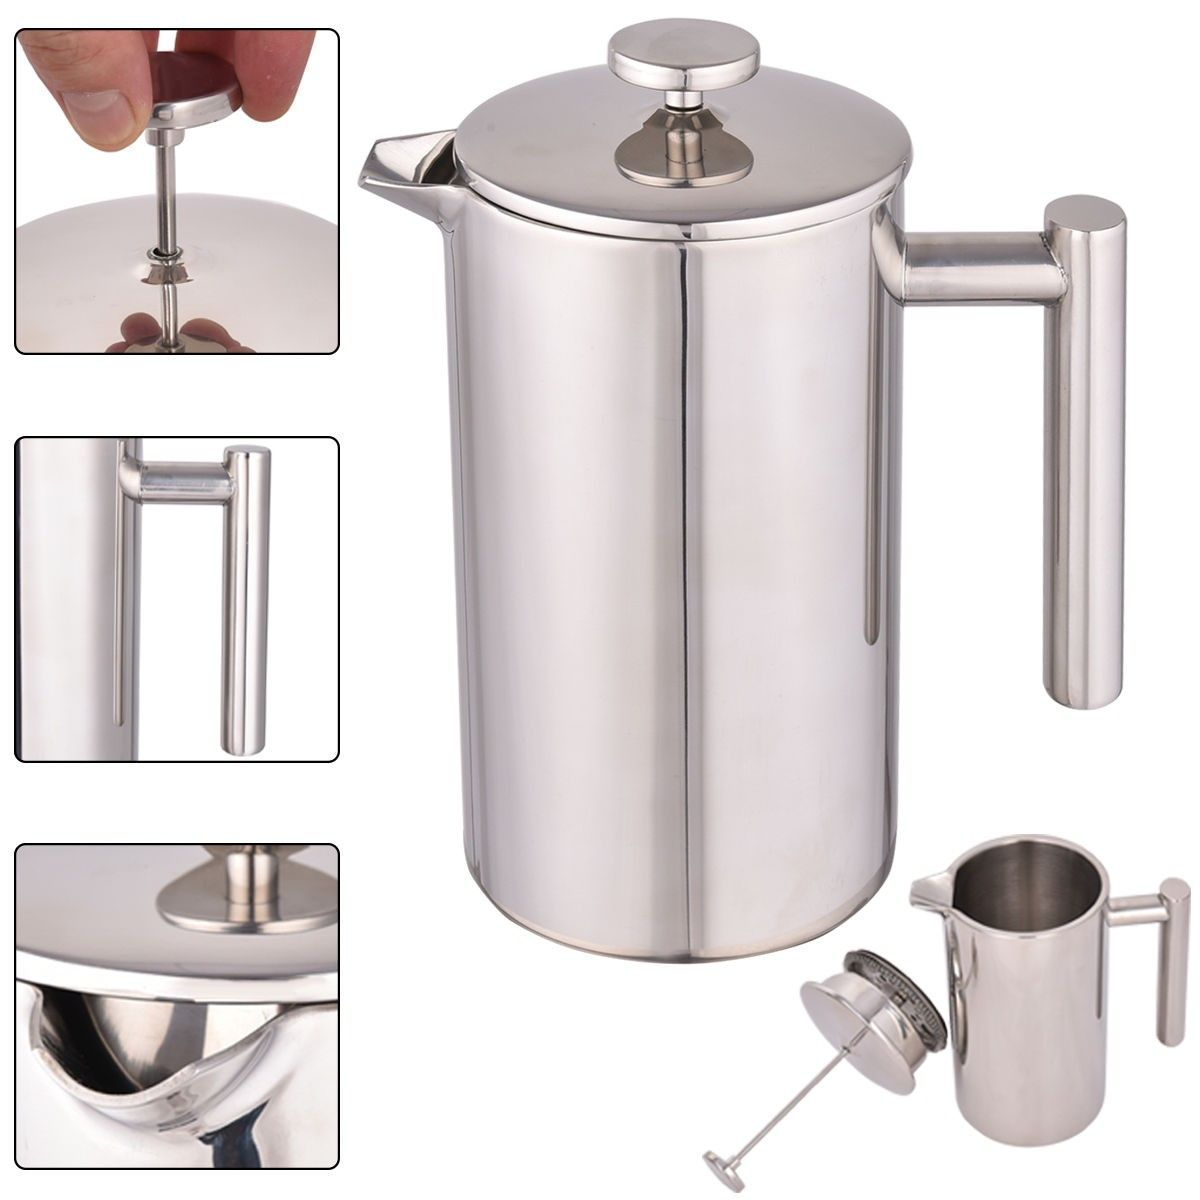 34 Oz Double Wall Stainless Steel Coffee Plunger 8 Cup French Press Maker